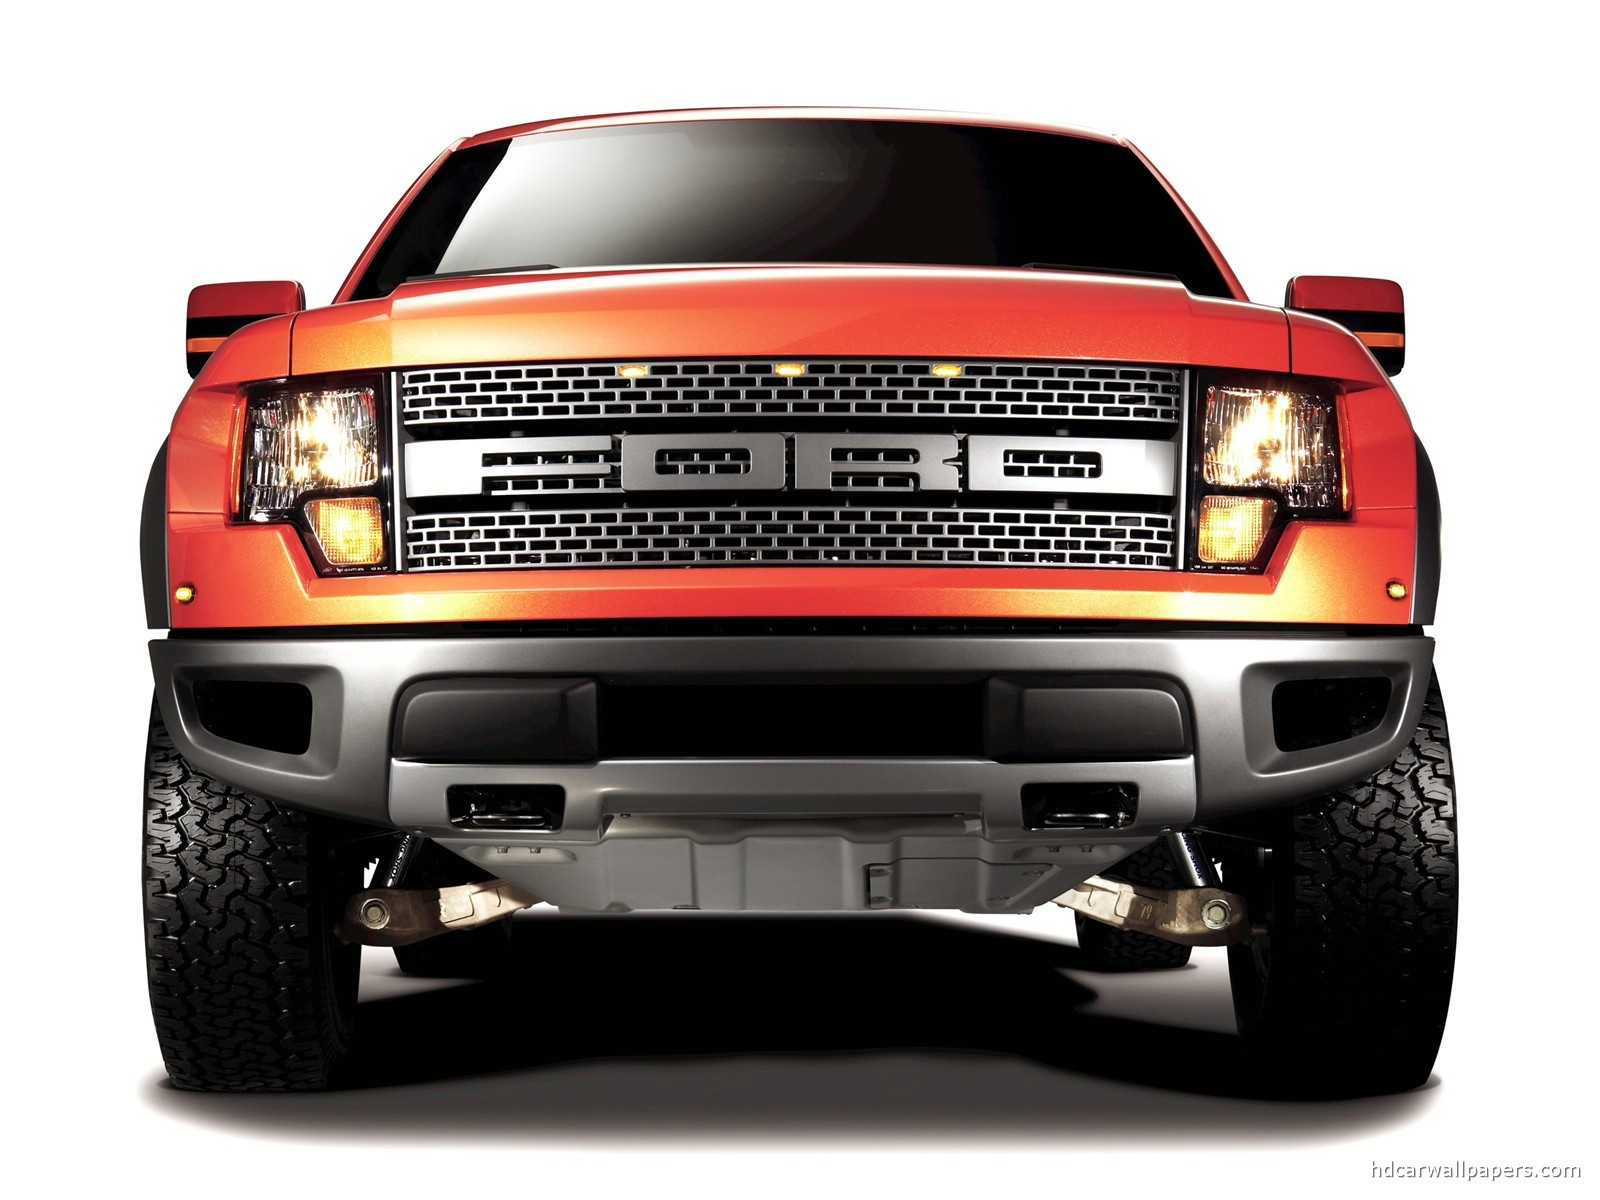 2010 Ford F150 Svt Raptor 2 Wallpapers In Jpg Format For Free Download